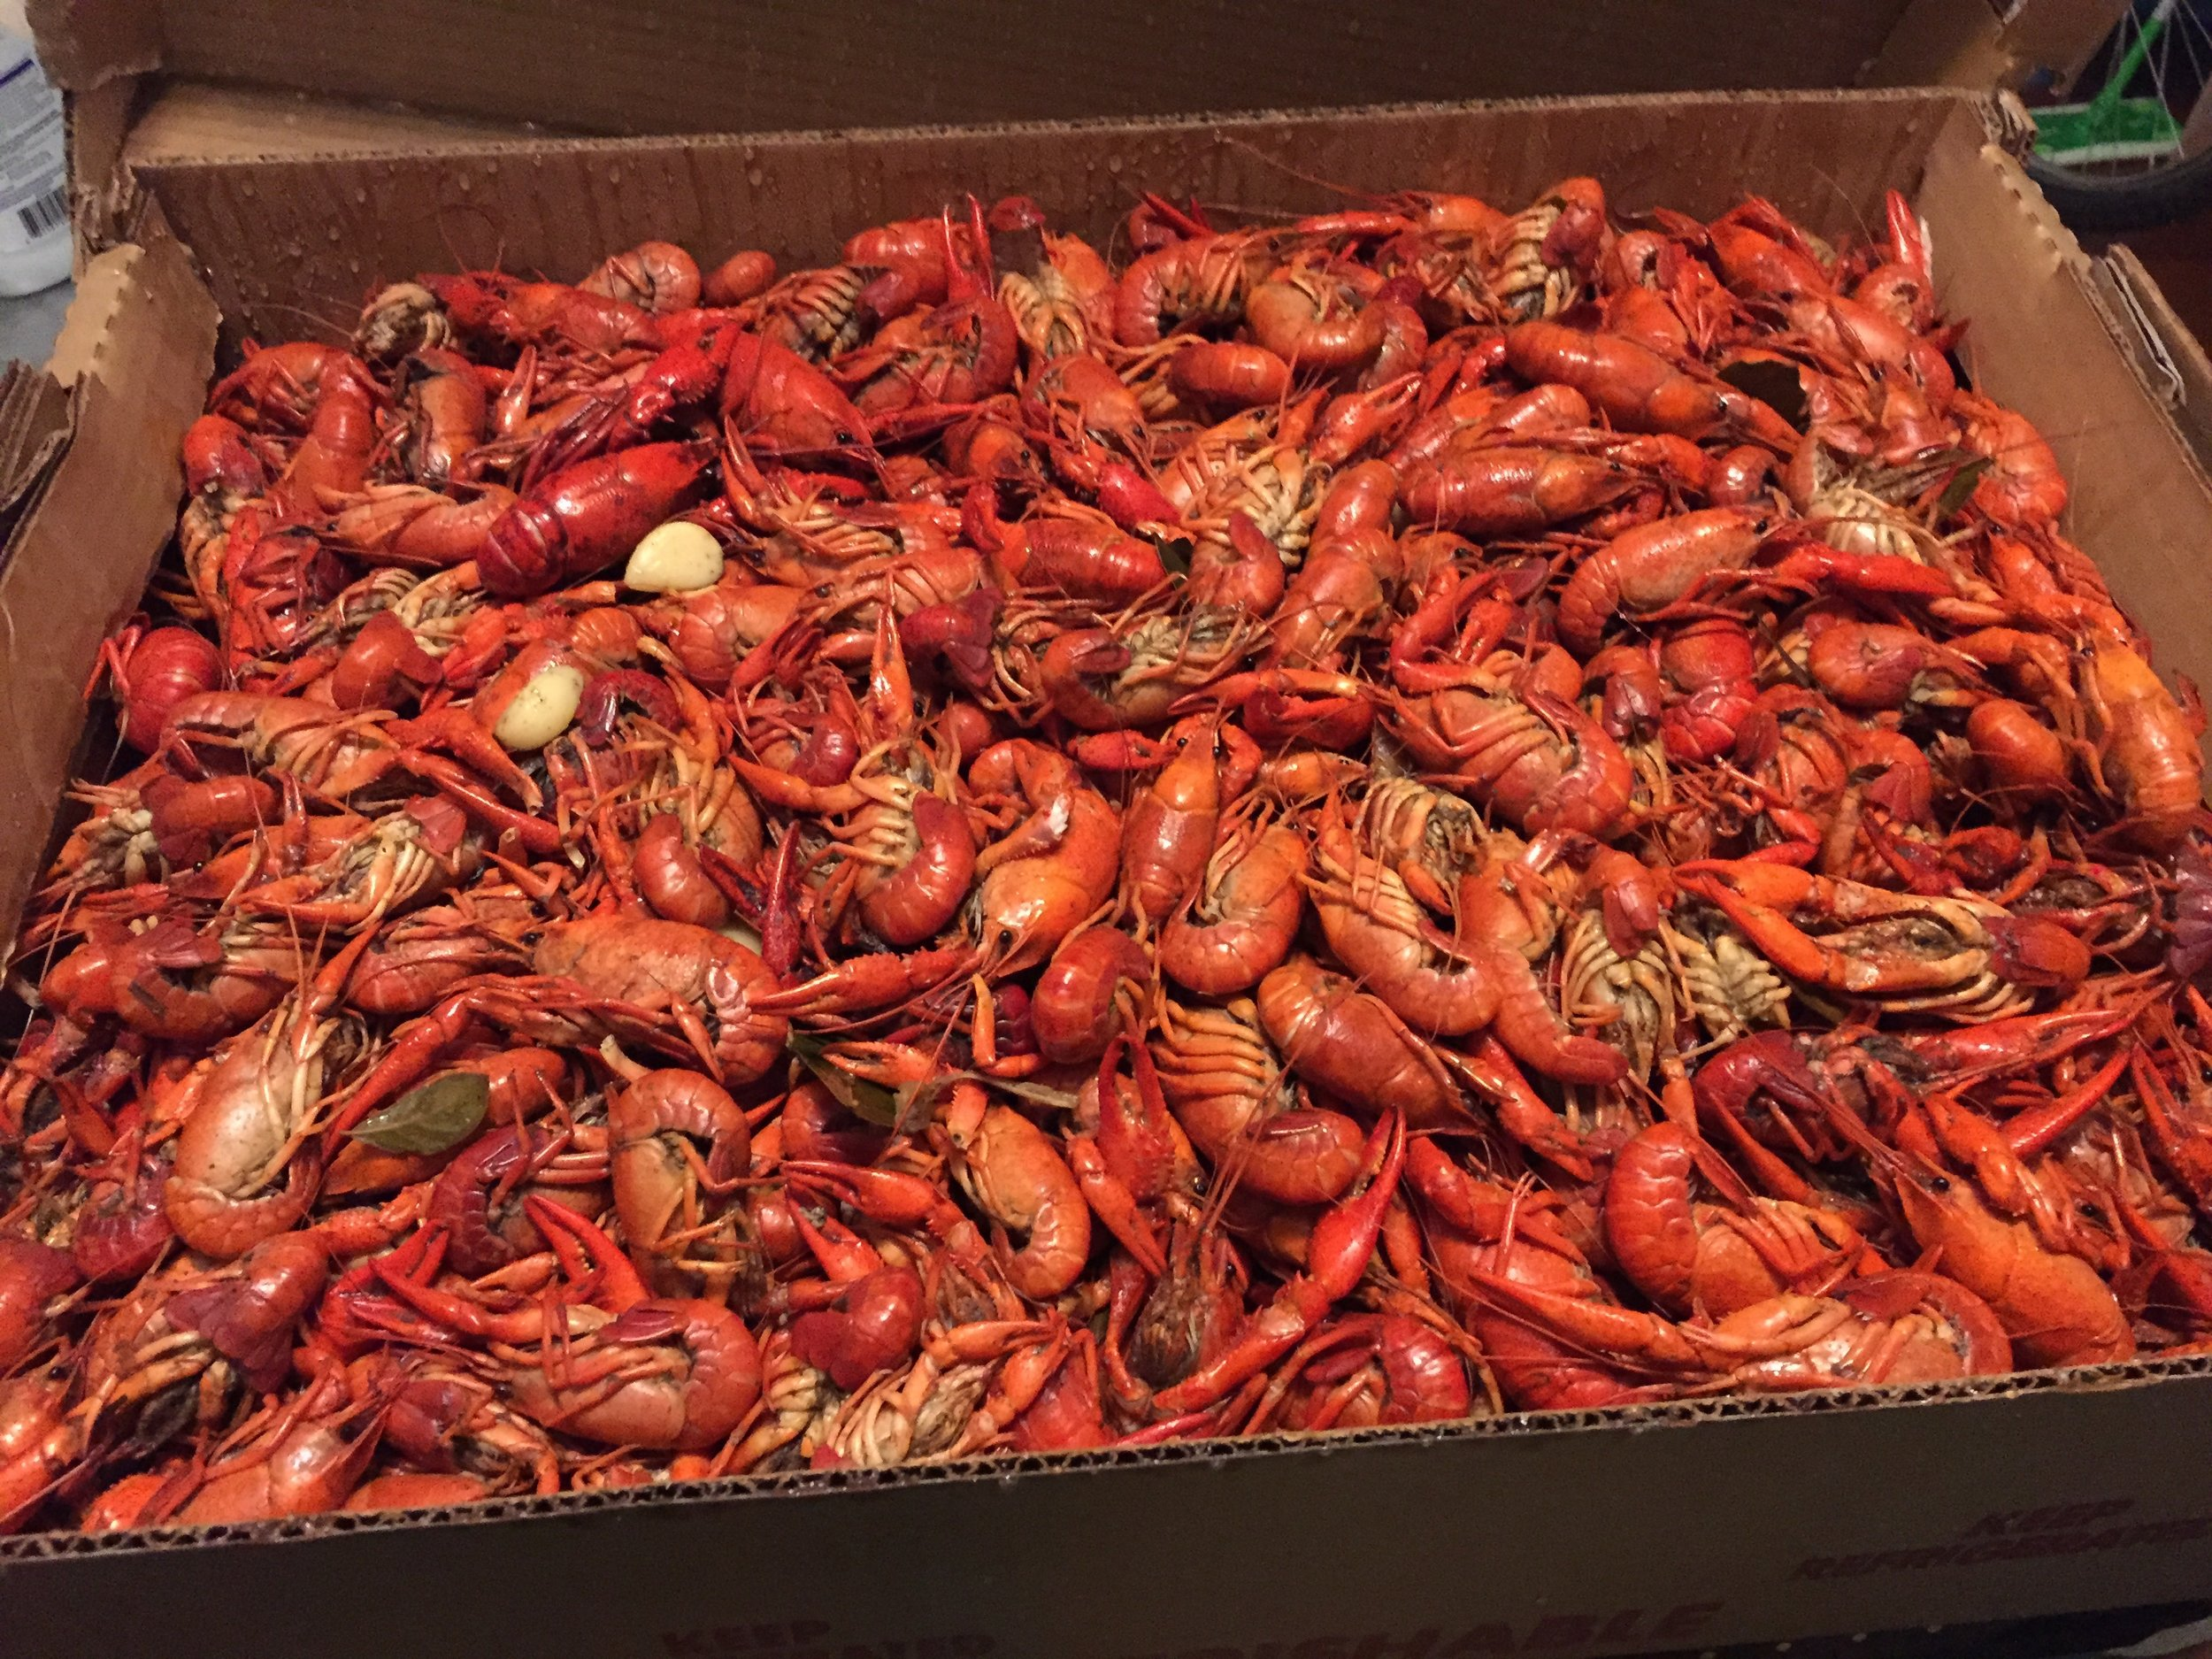 Chowing down on a box of crawfish during a Mardi Gras tailgate.